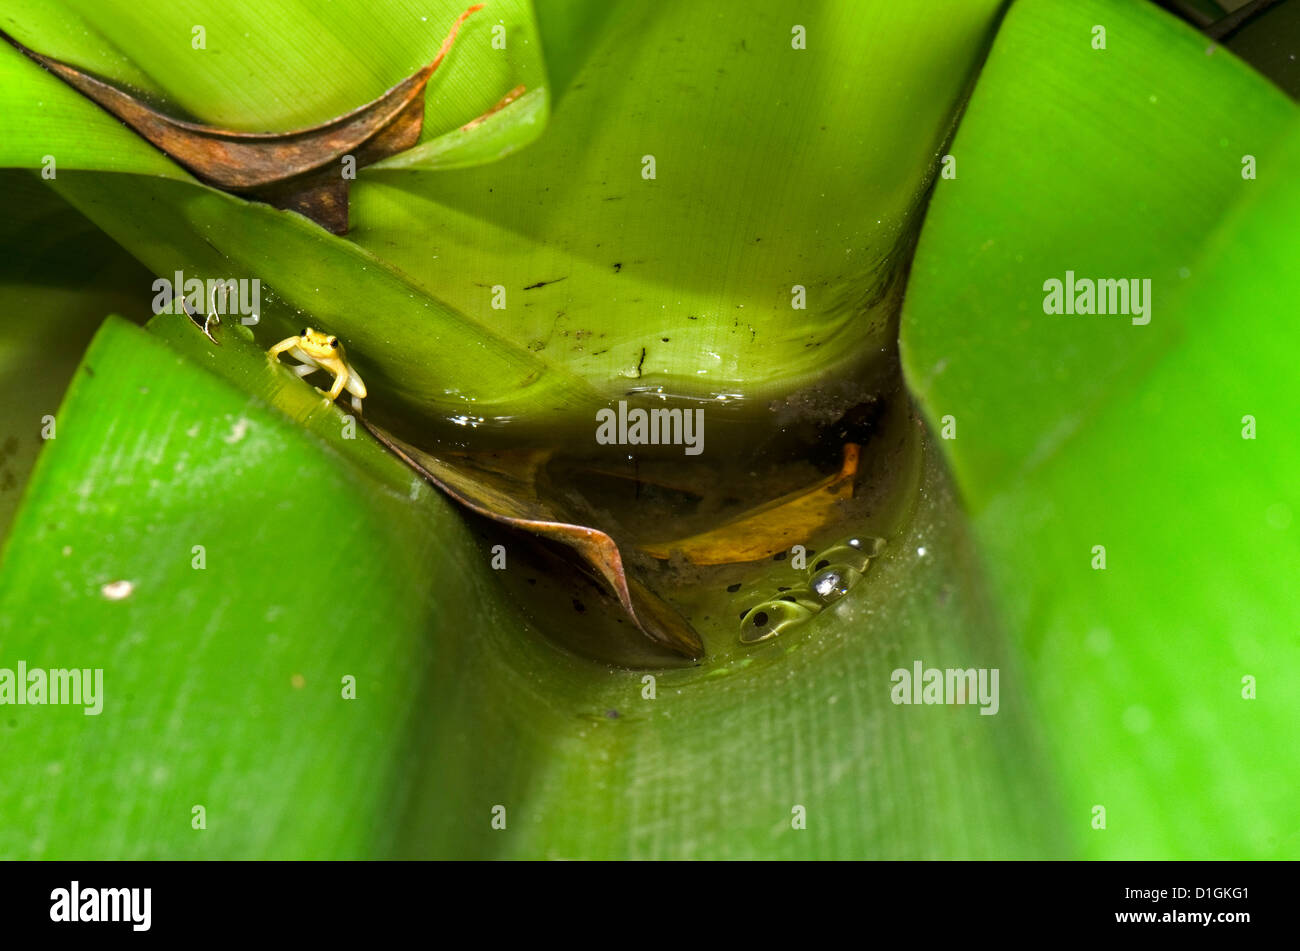 Golden Rocket Frog (Anomaloglossus beebei) guarding spawn in Giant Tank Bromeliad, Kaieteur National Park, Guyana - Stock Image